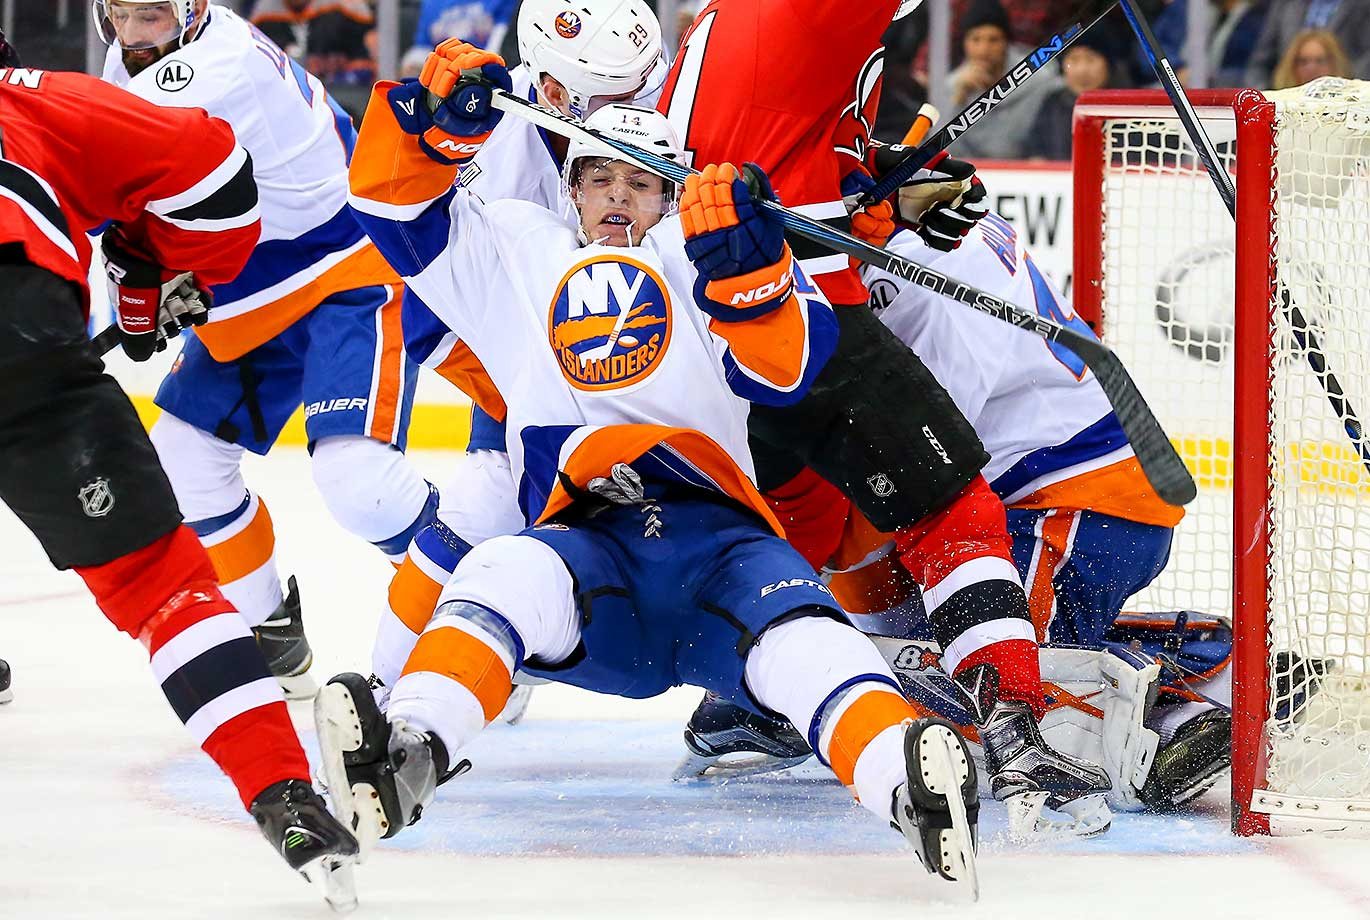 New York Islanders defenseman Thomas Hickey gets knocked down while facing the New Jersey Devils.